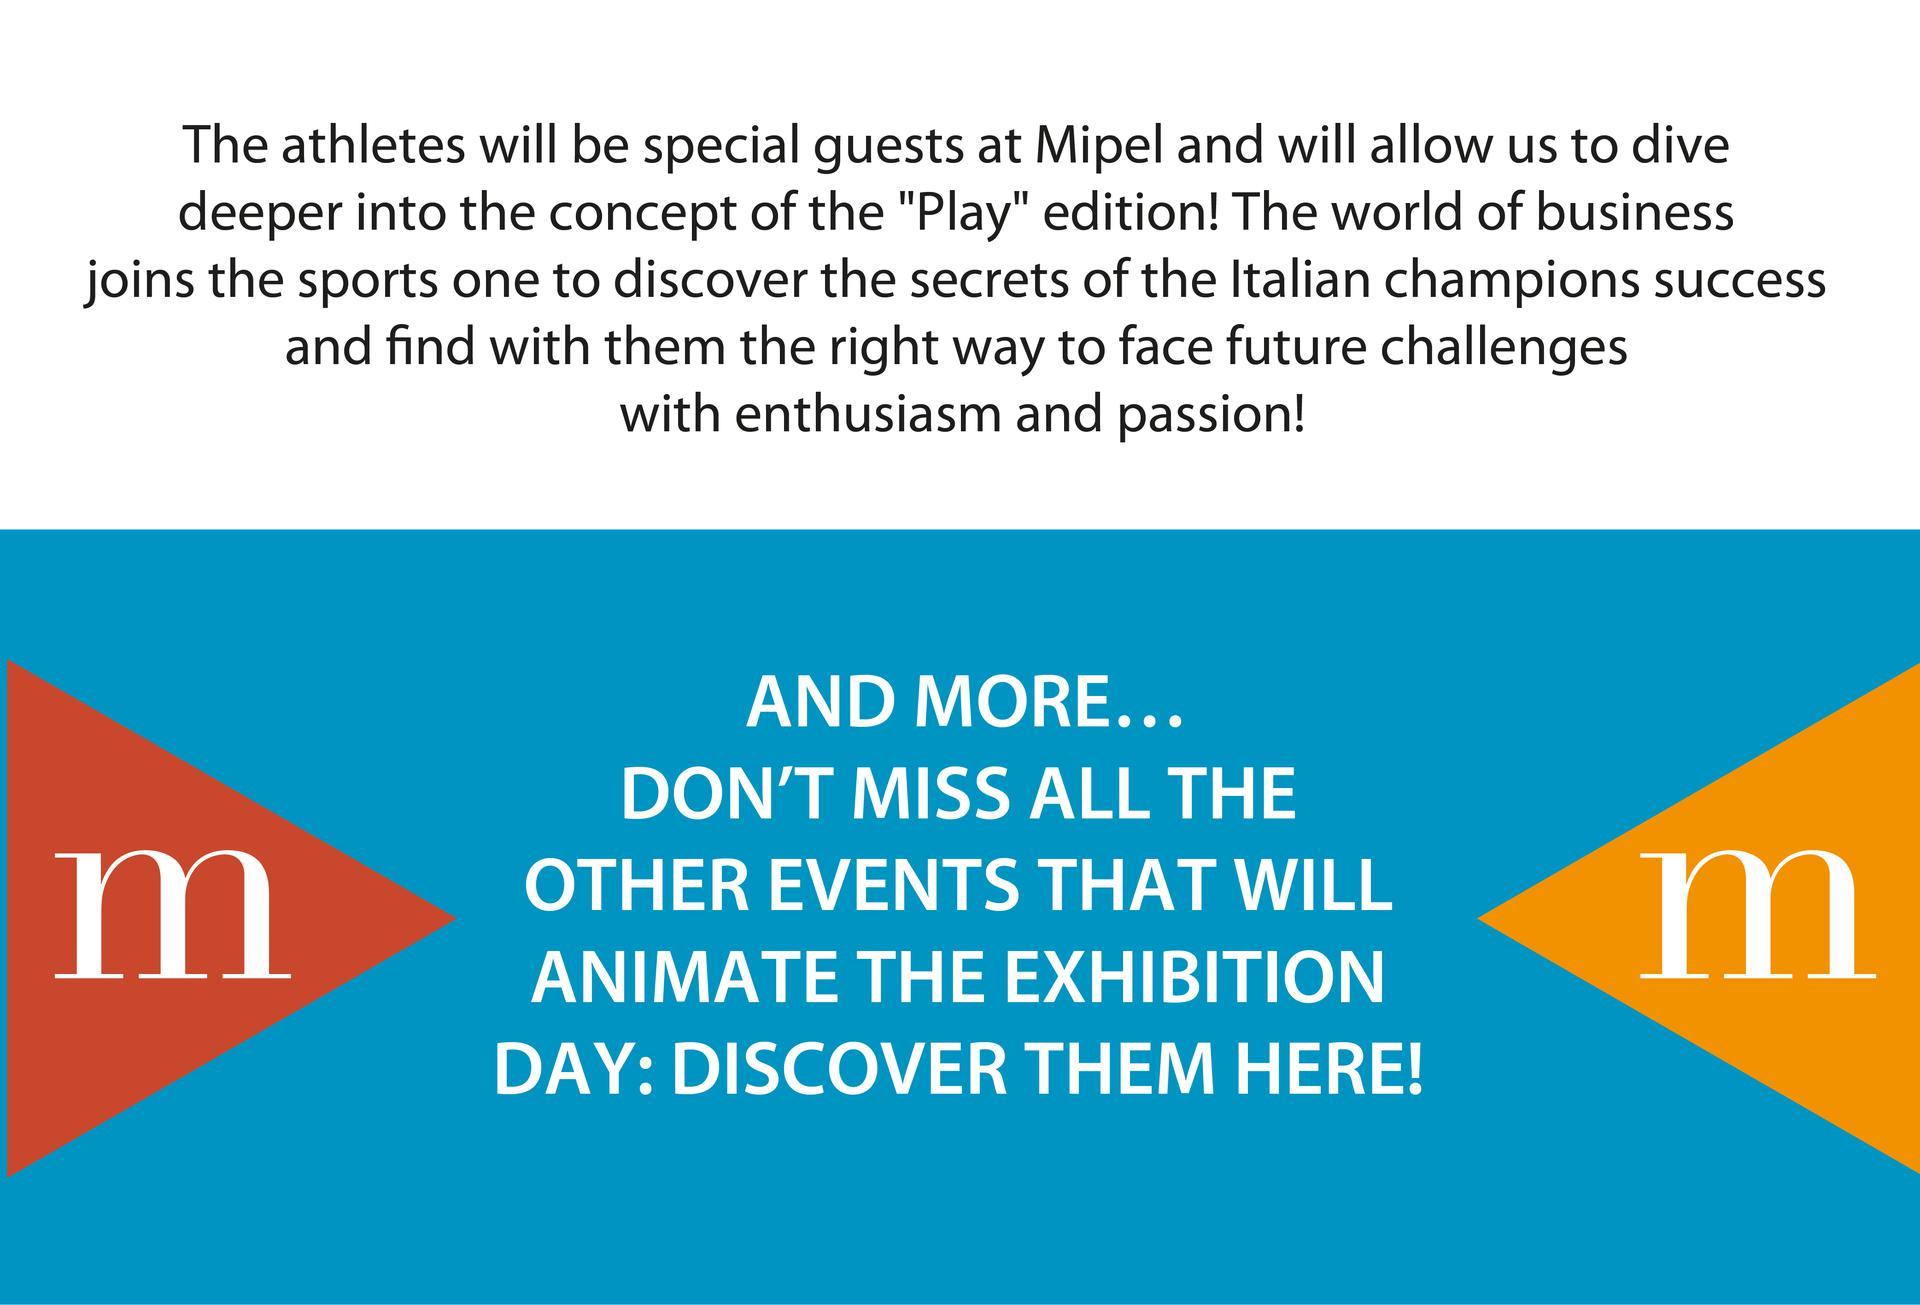 DON'T MISS ALL THE OTHER EVENTS THAT WILL ANIMATE THE EXHIBITION, DISCOVER THEM IN THE FOLLOWING CALENDAR